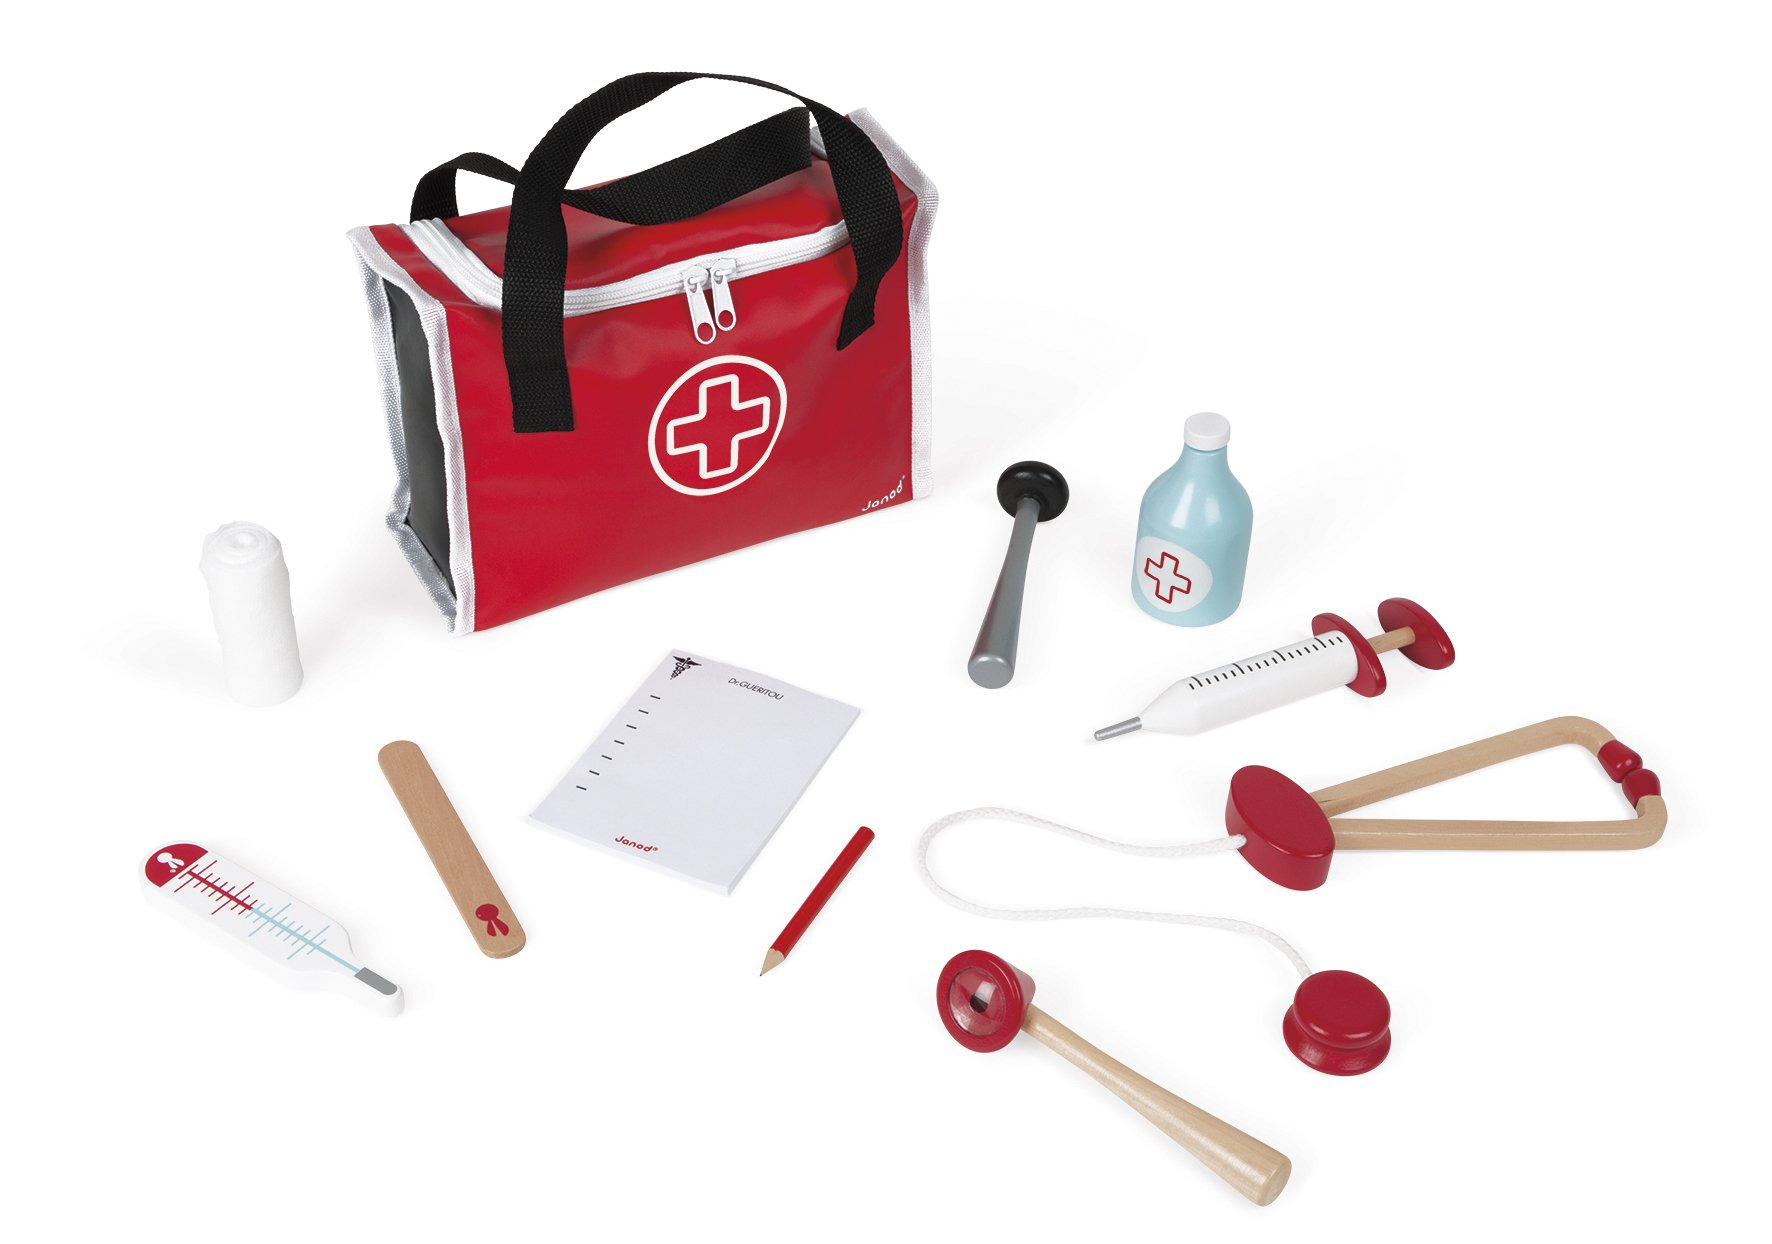 Janod Doctor's Suitcase - Classic Wooden Pretend Medical Playset - Durable First Aid Kit Includes Stethoscope and Travel Case - Develops Role Play and Imaginative Skills - Ages 3+ Years by Janod